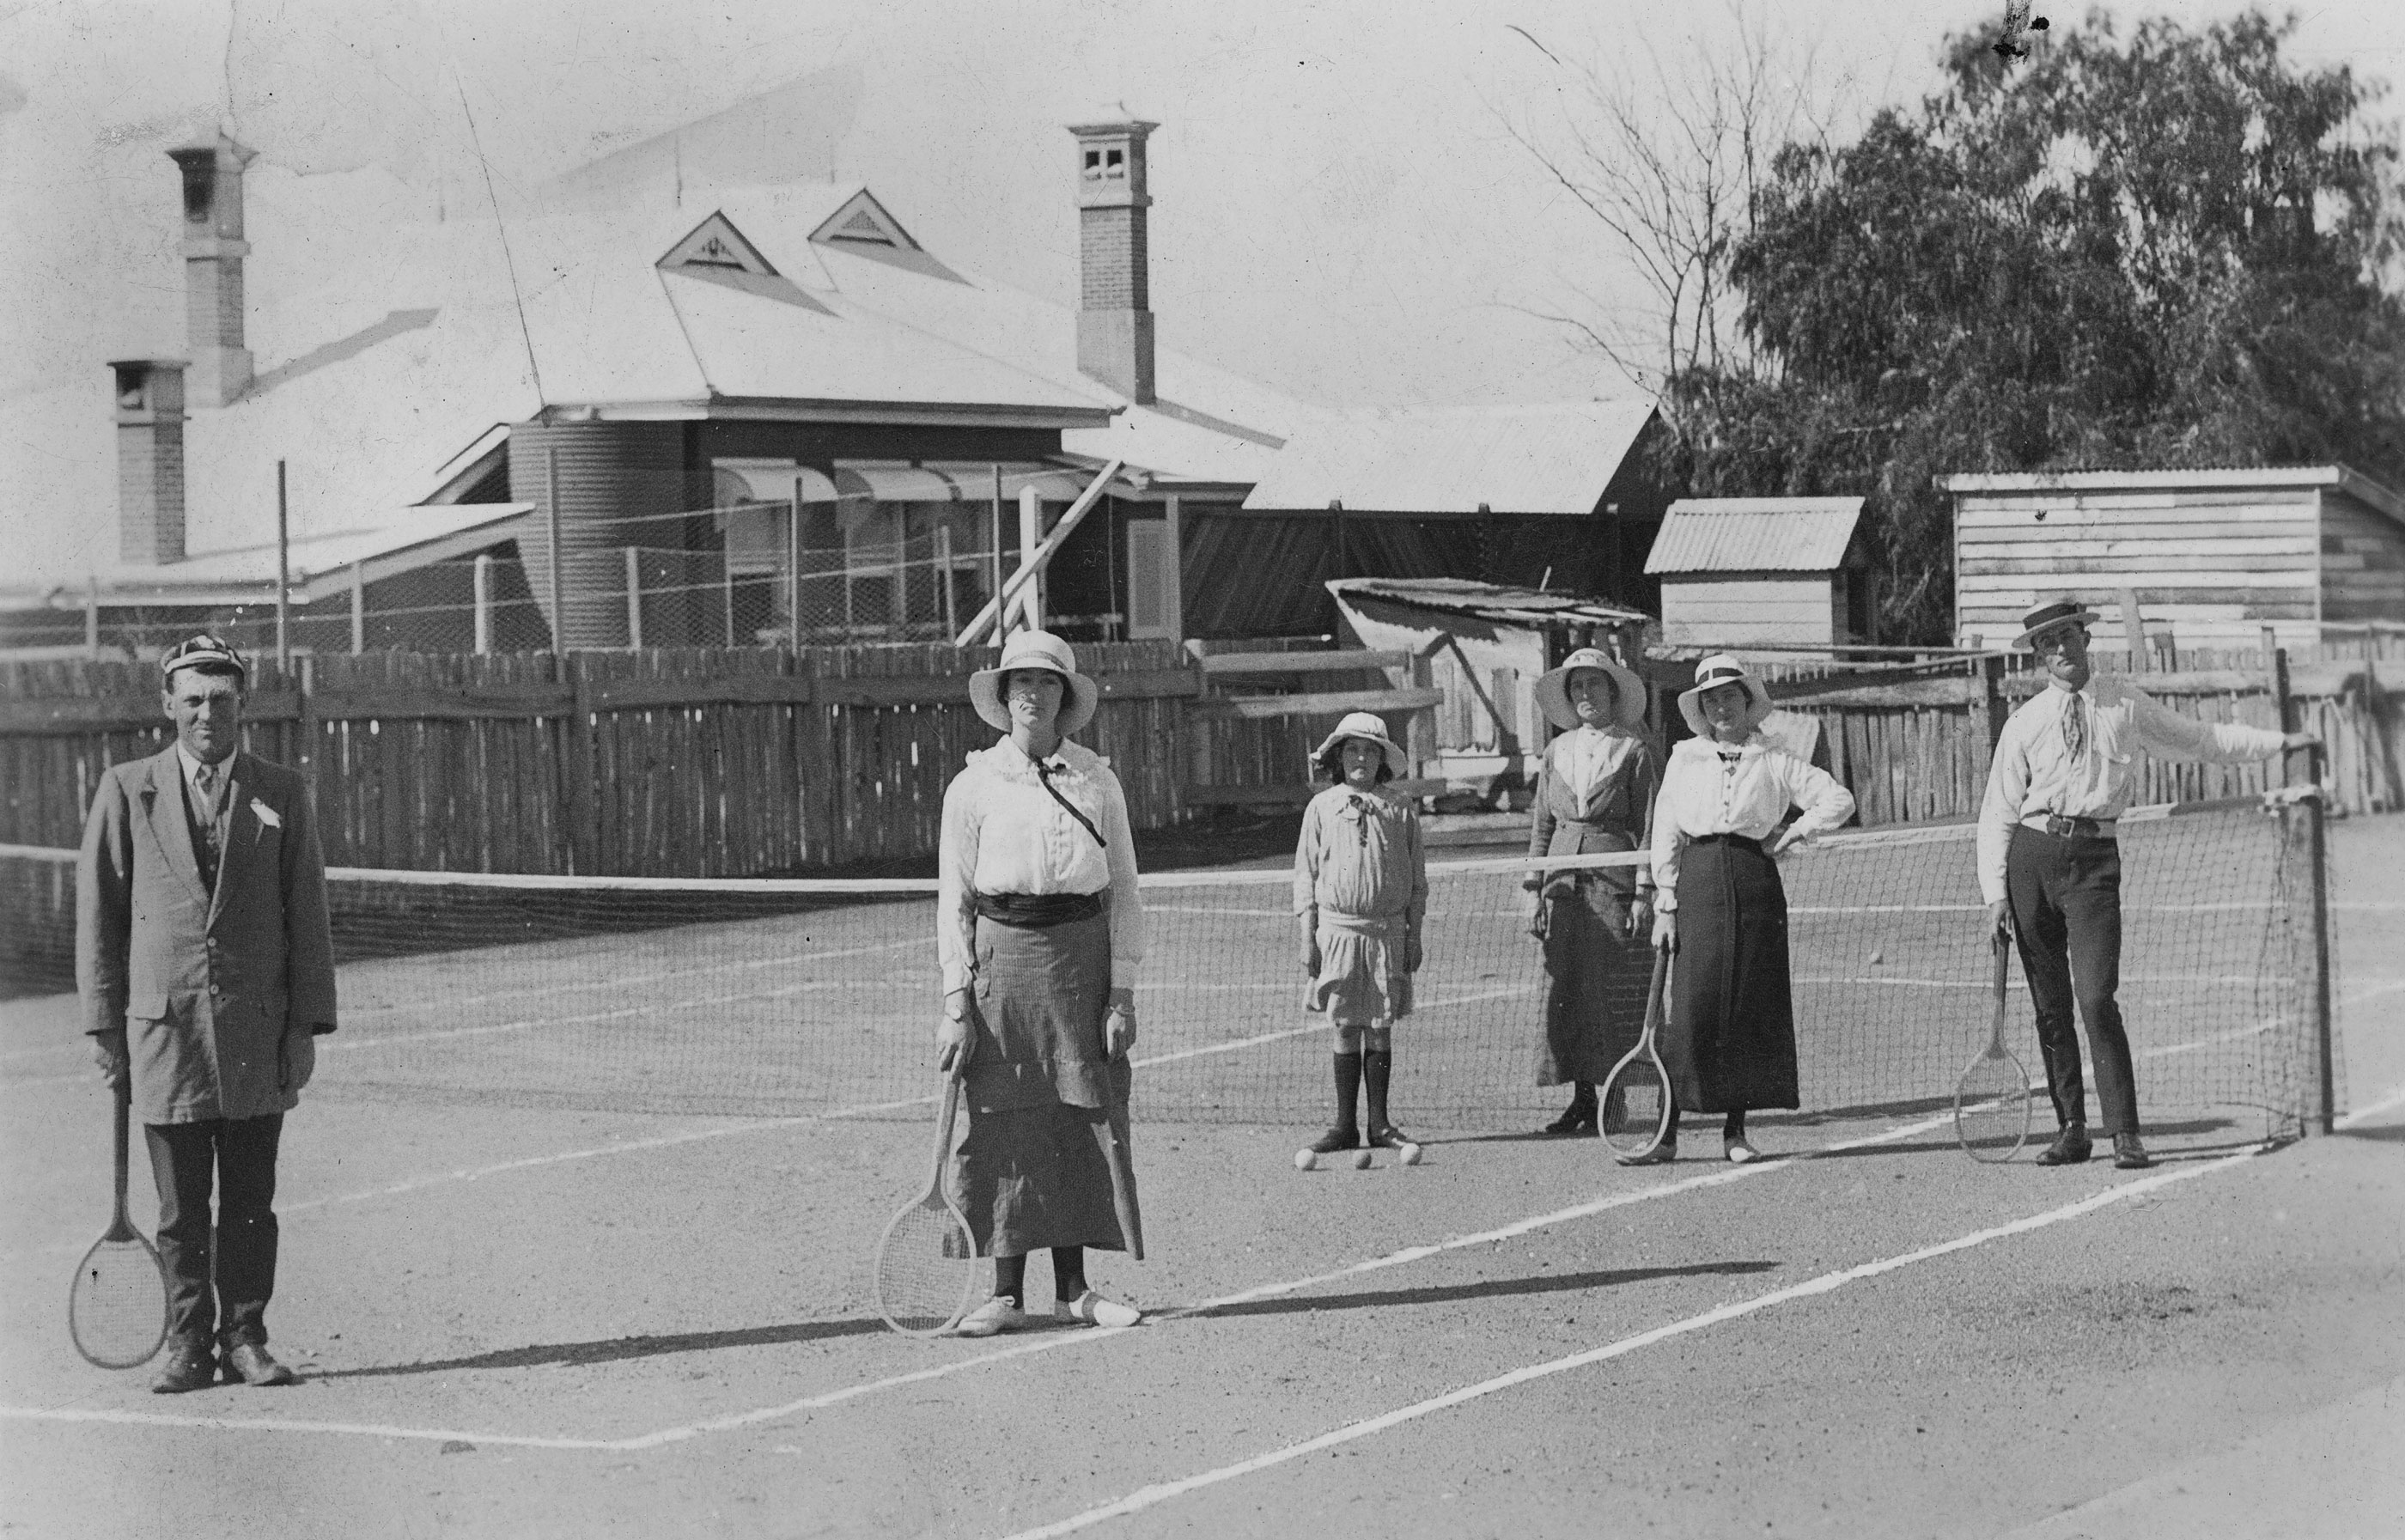 Tennis players standing on a tennis court ca 1915